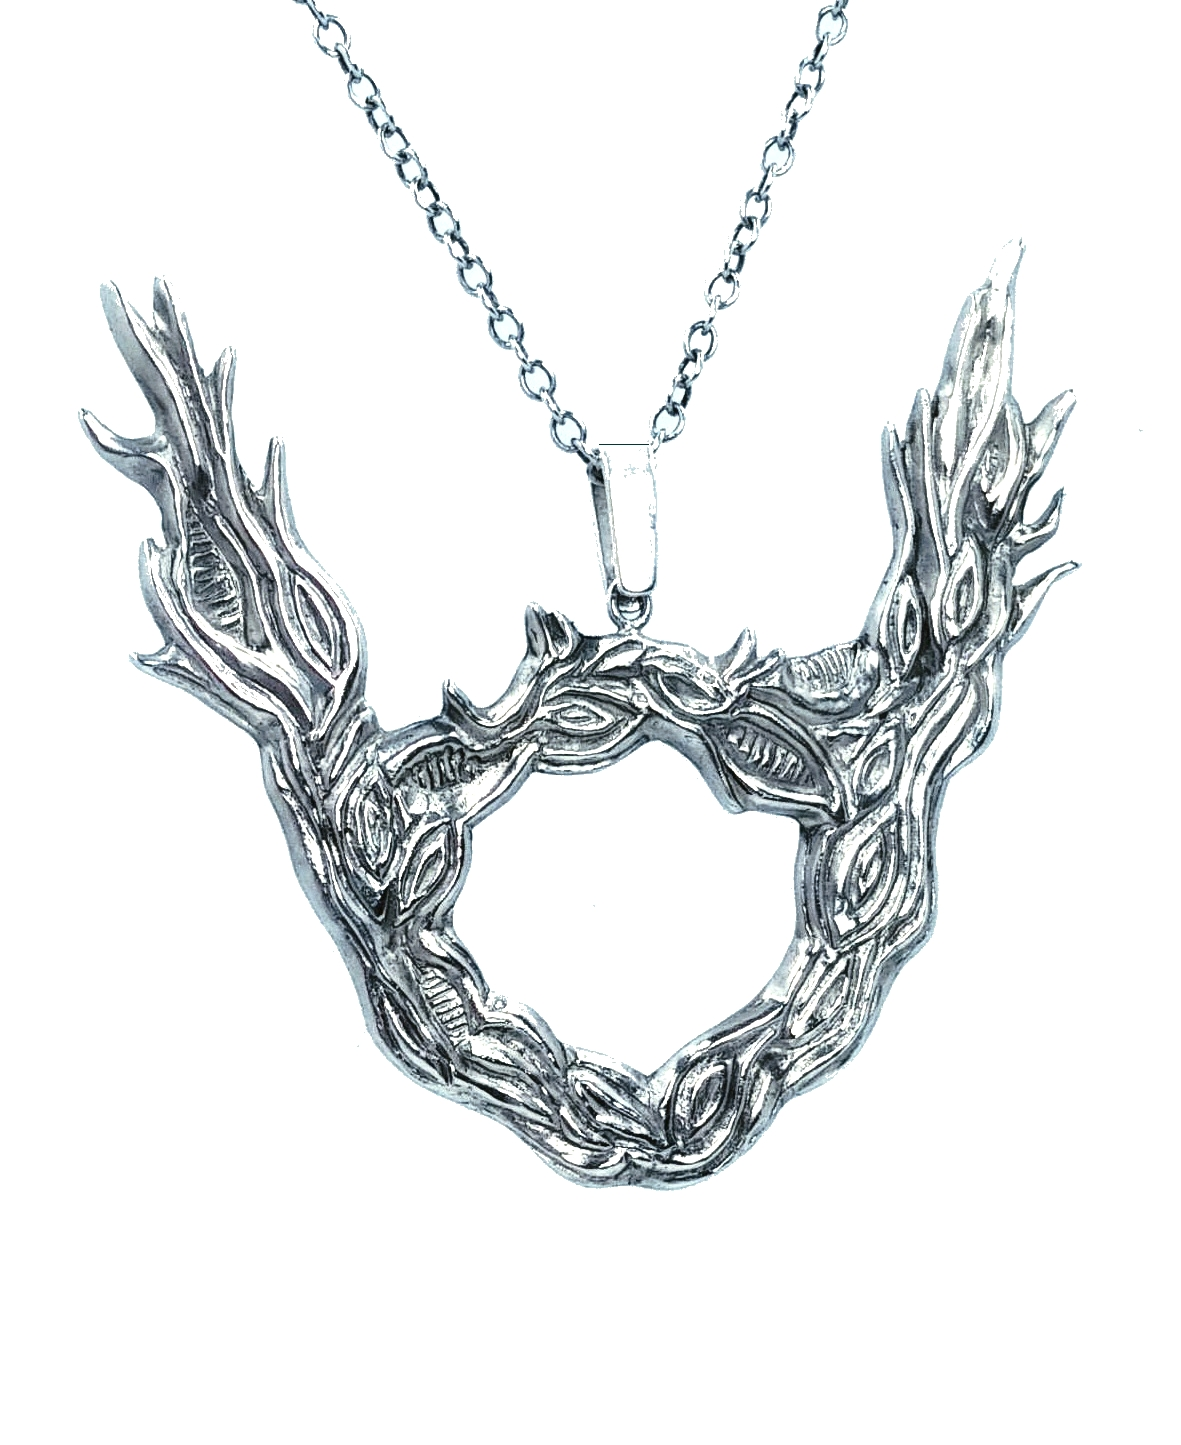 Large silver tree branch/ horned pendant